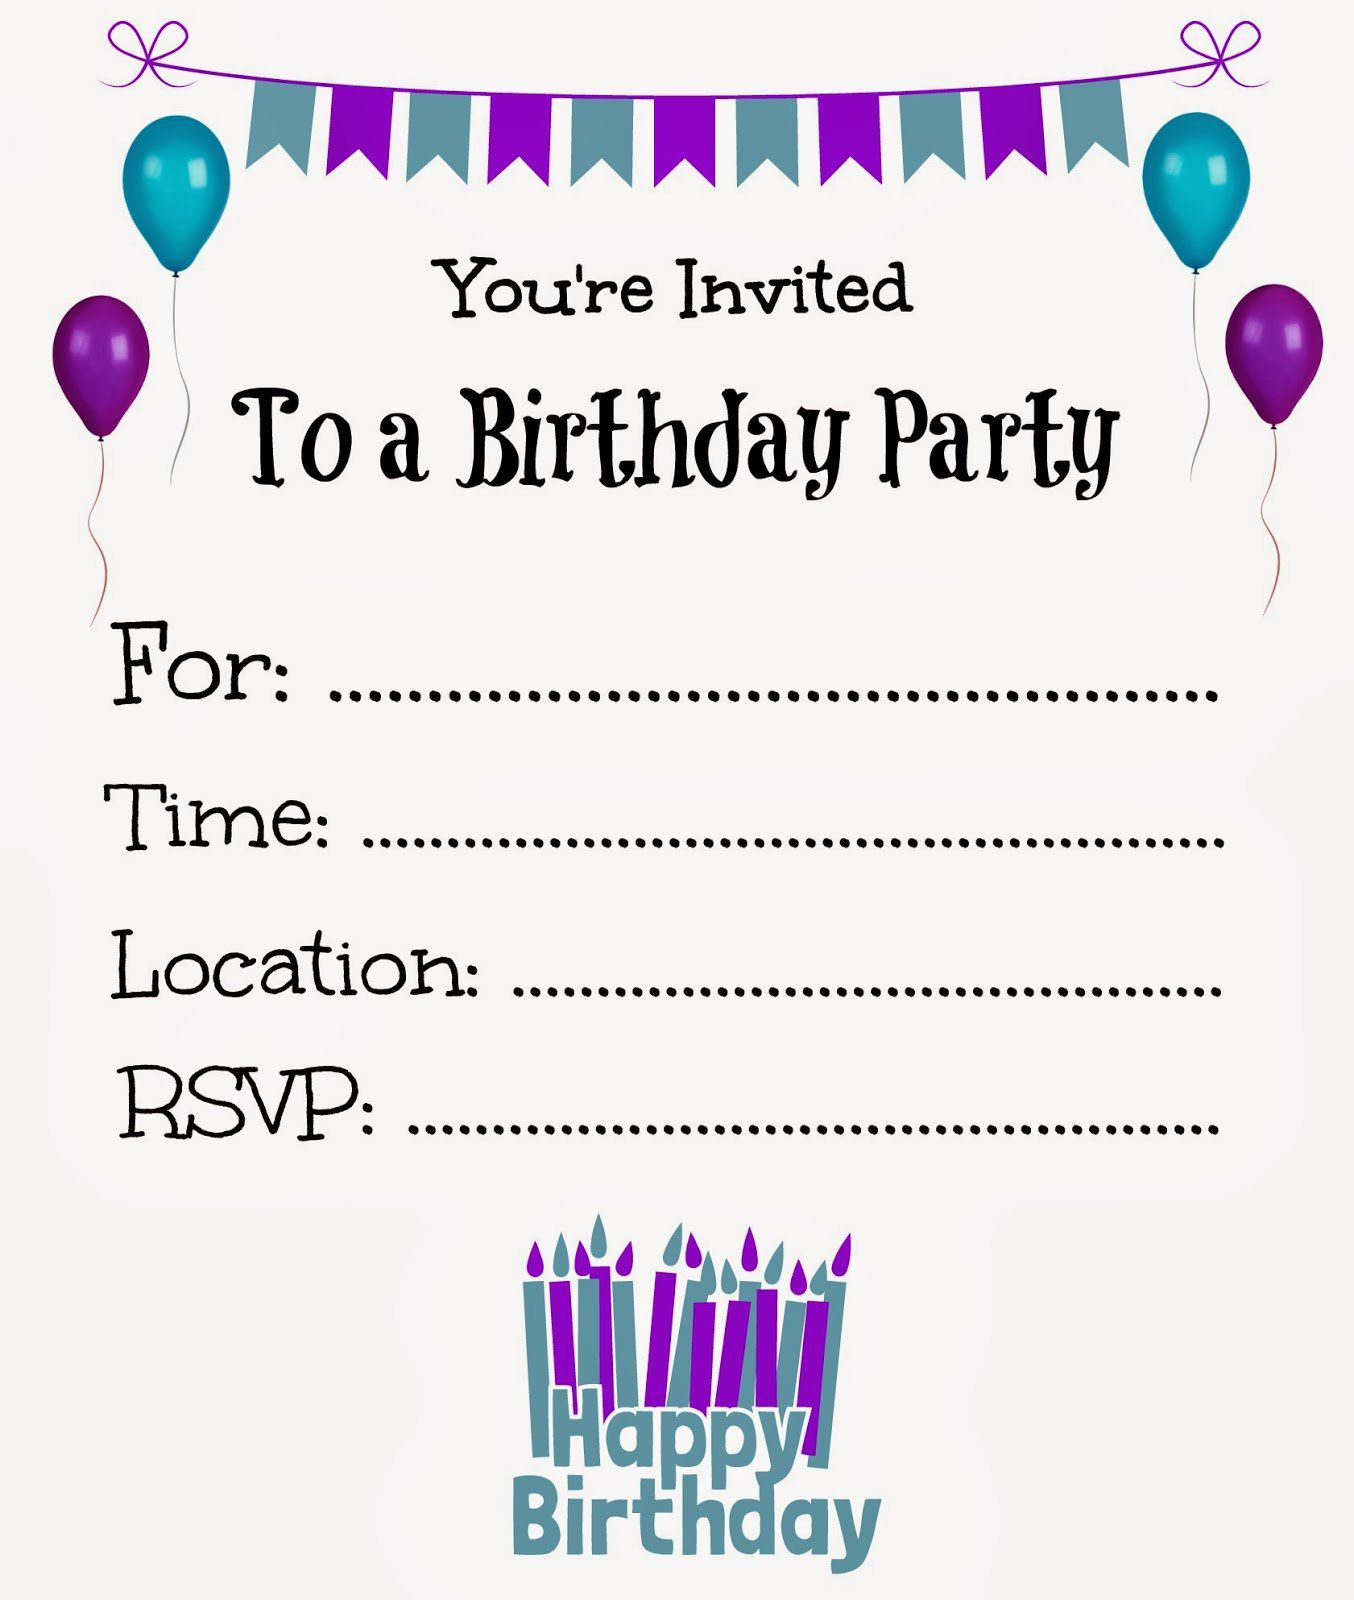 Birthday Invitation Template Free Printable Birthday I Birthday Party Invitations Printable Birthday Invitation Card Template Birthday Invitation Card Online